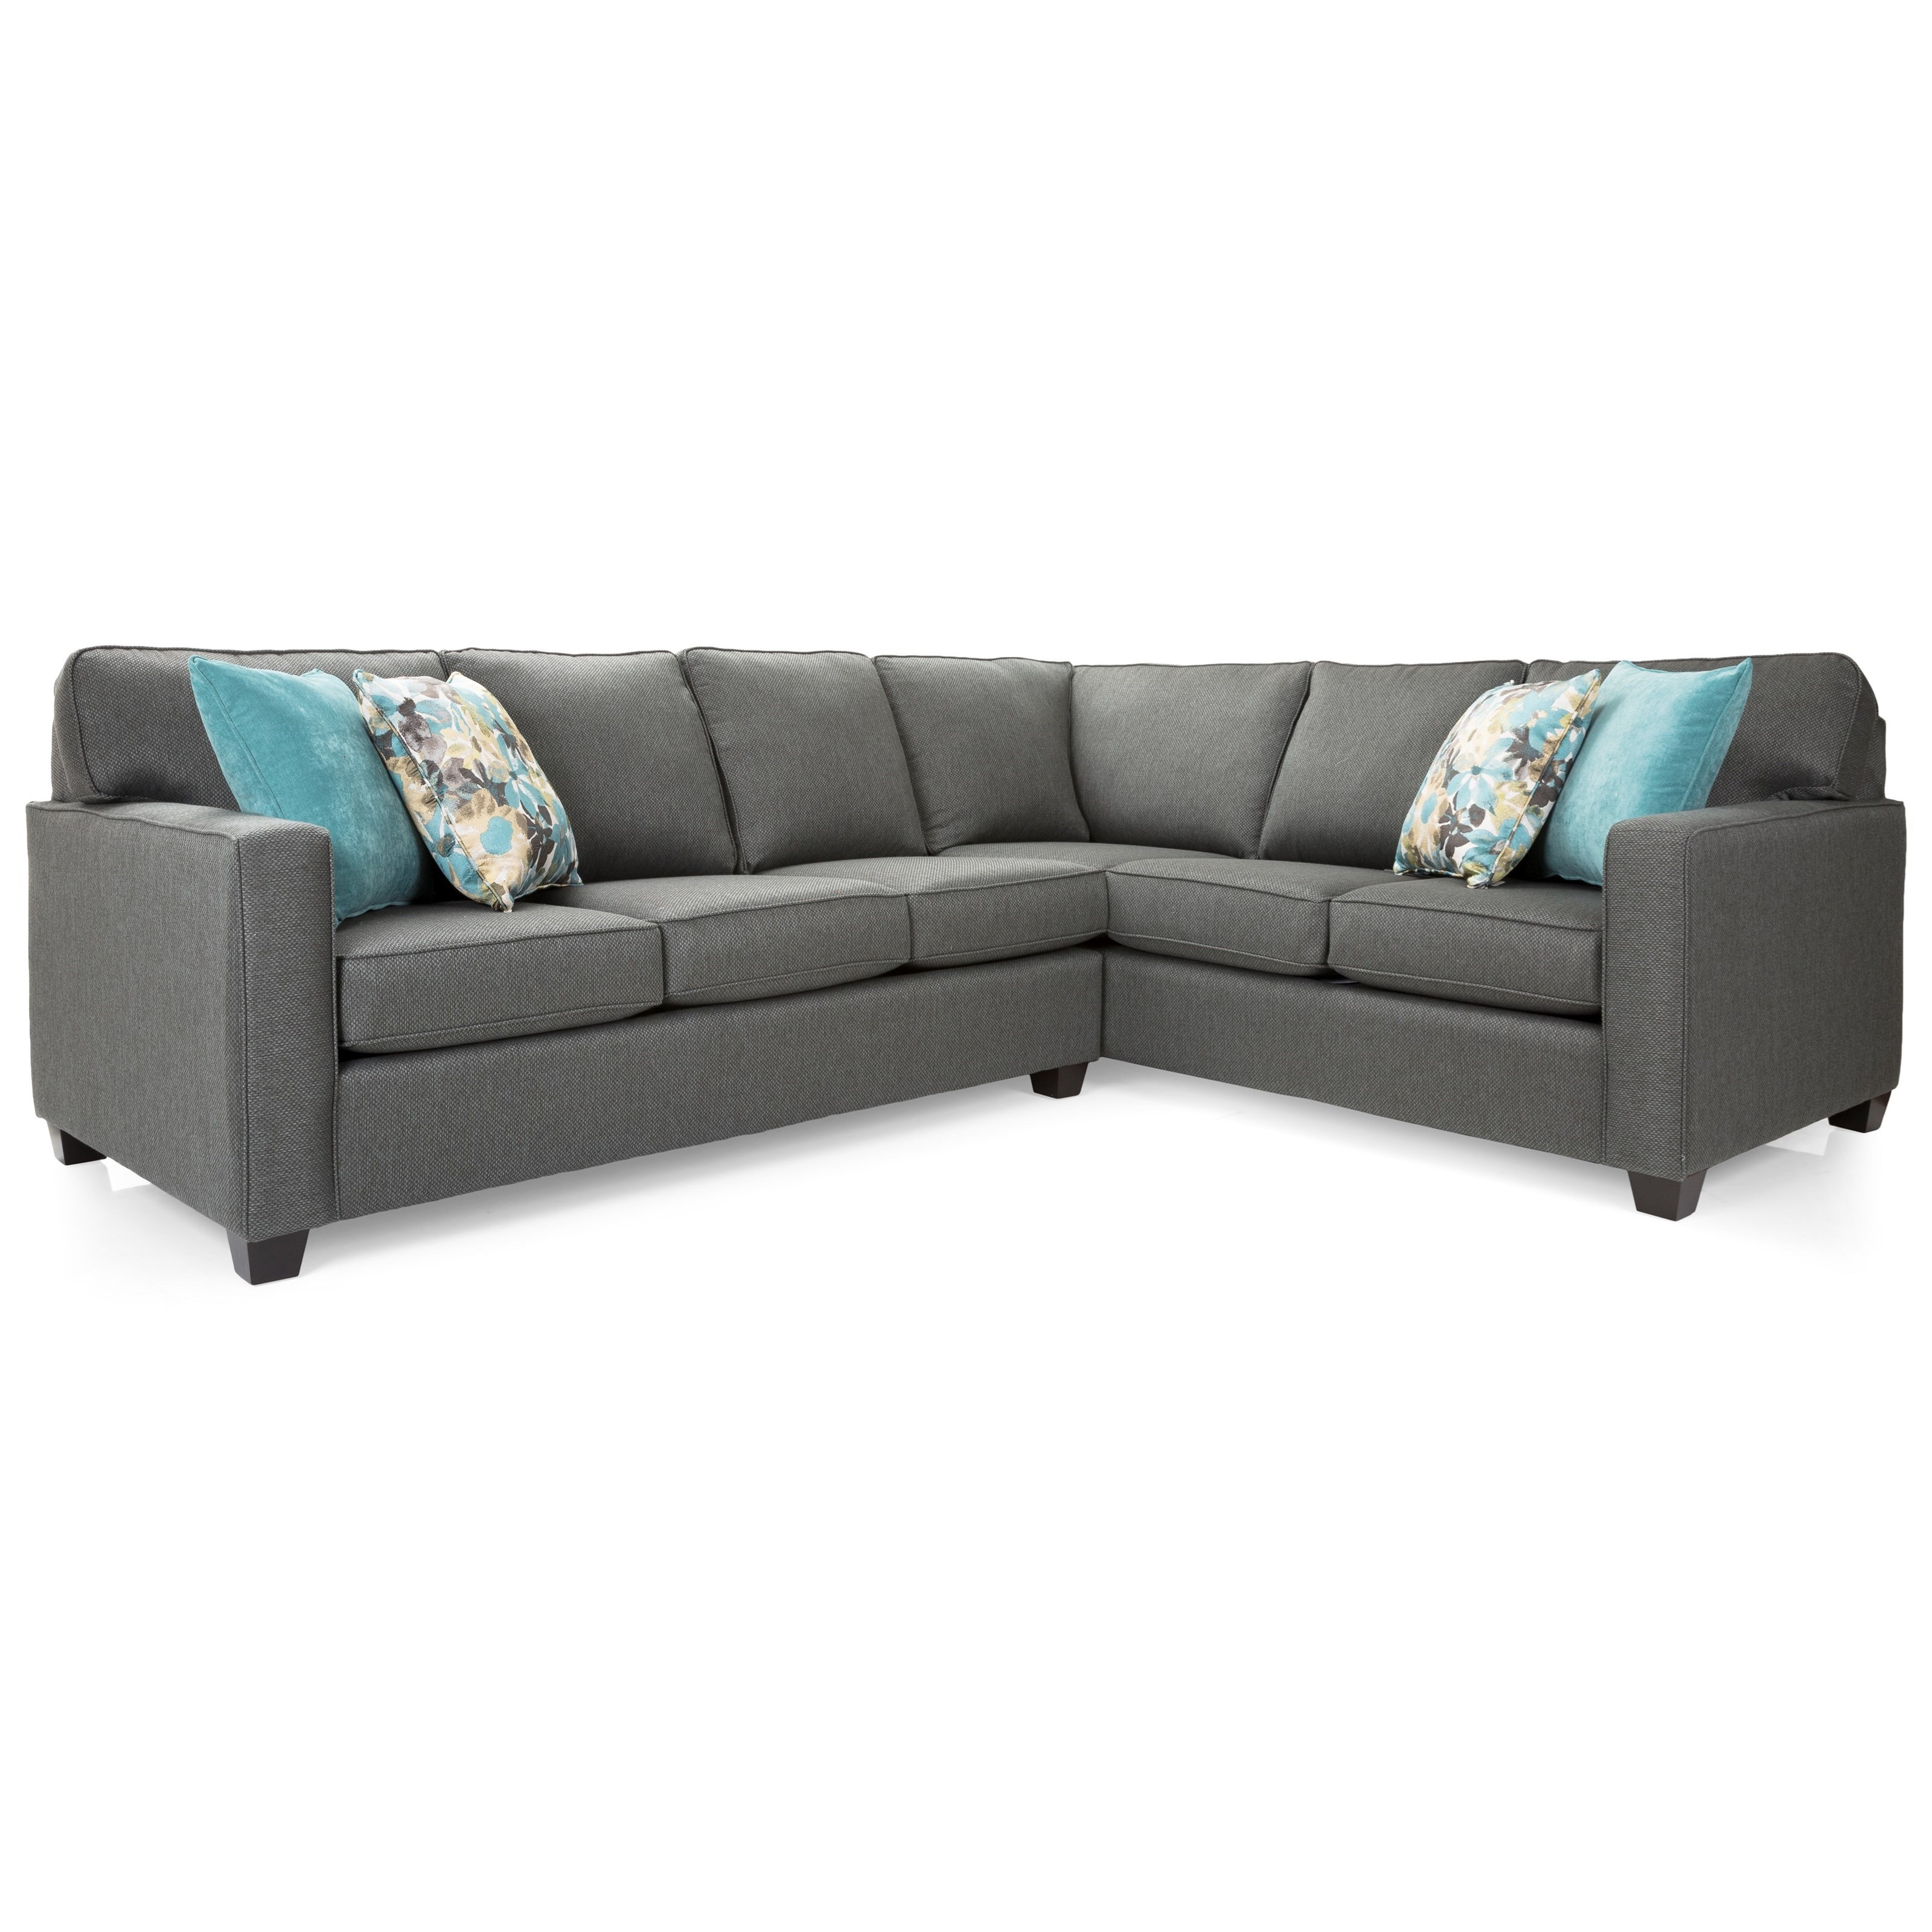 2541 Sectional Sofa by Decor-Rest at Upper Room Home Furnishings